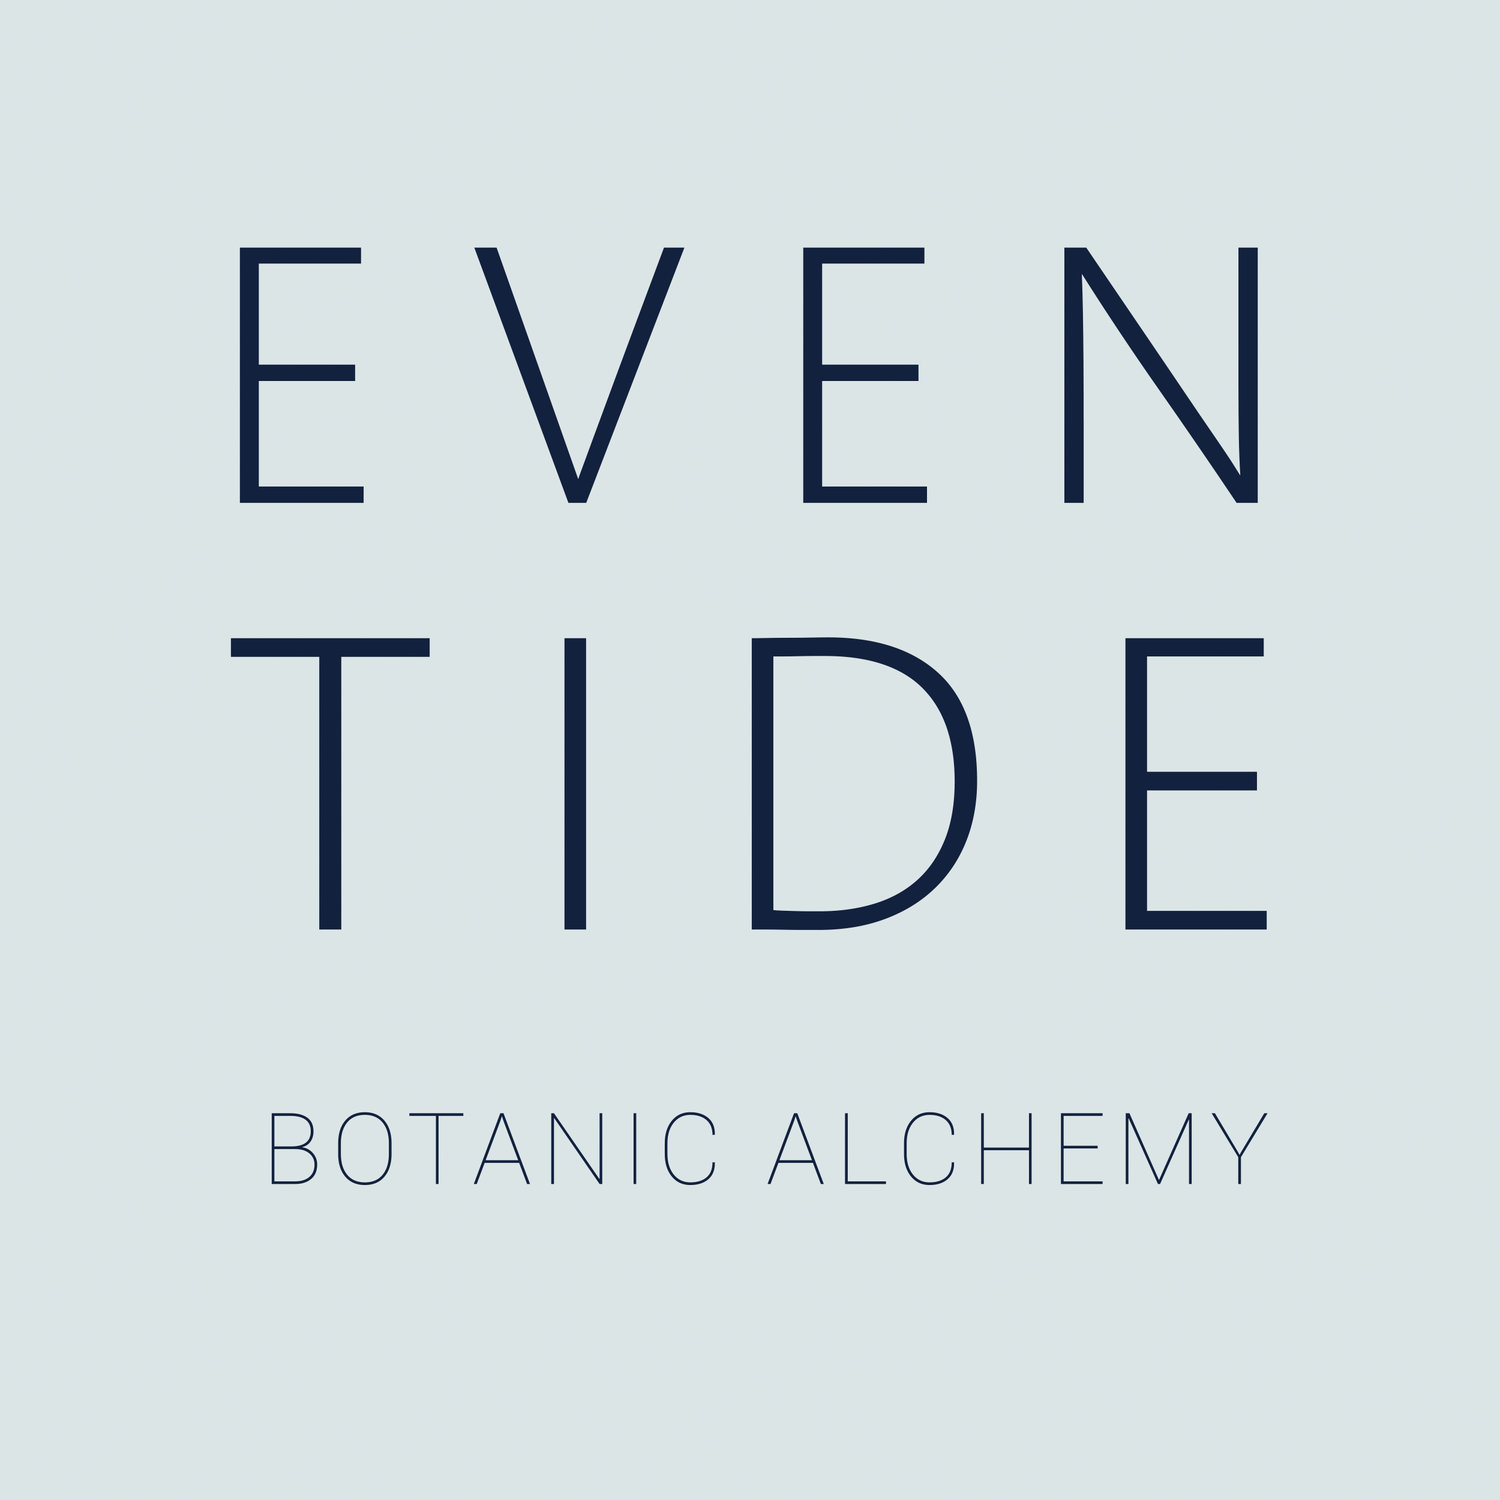 Eventide Botanic Alchemy